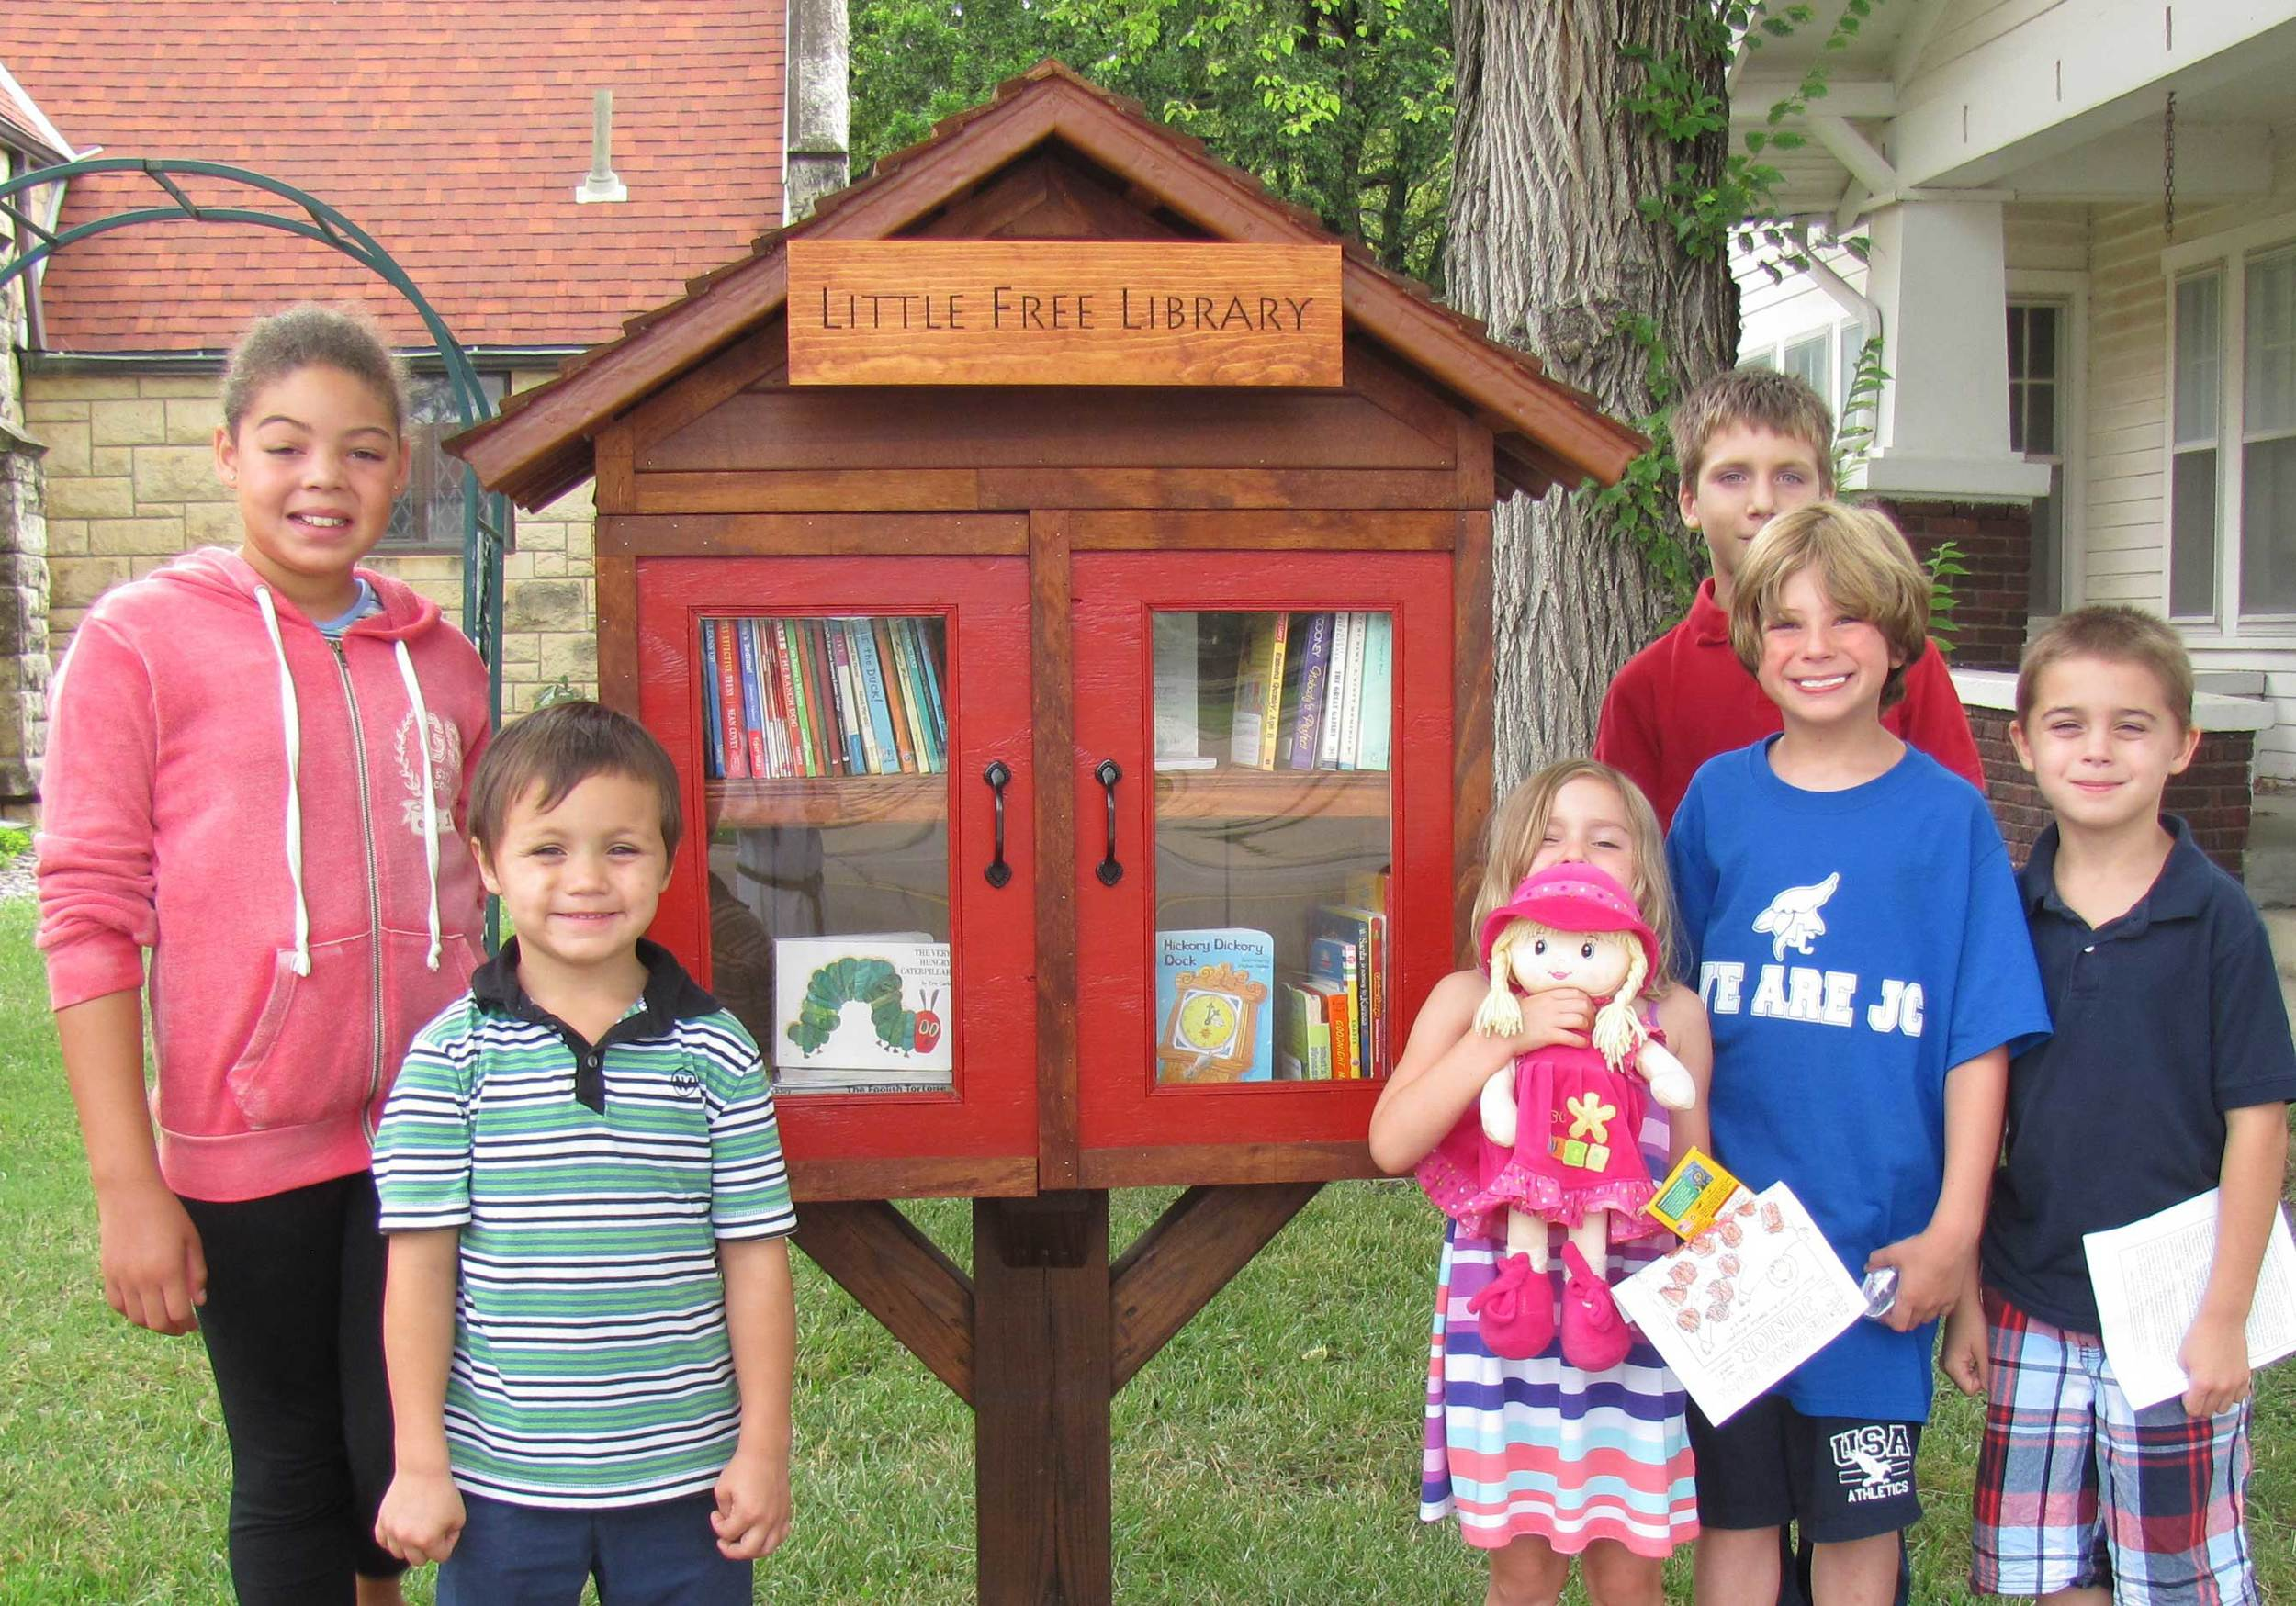 Young parishioners donated books to start the Little Free Library St. John's hosts.